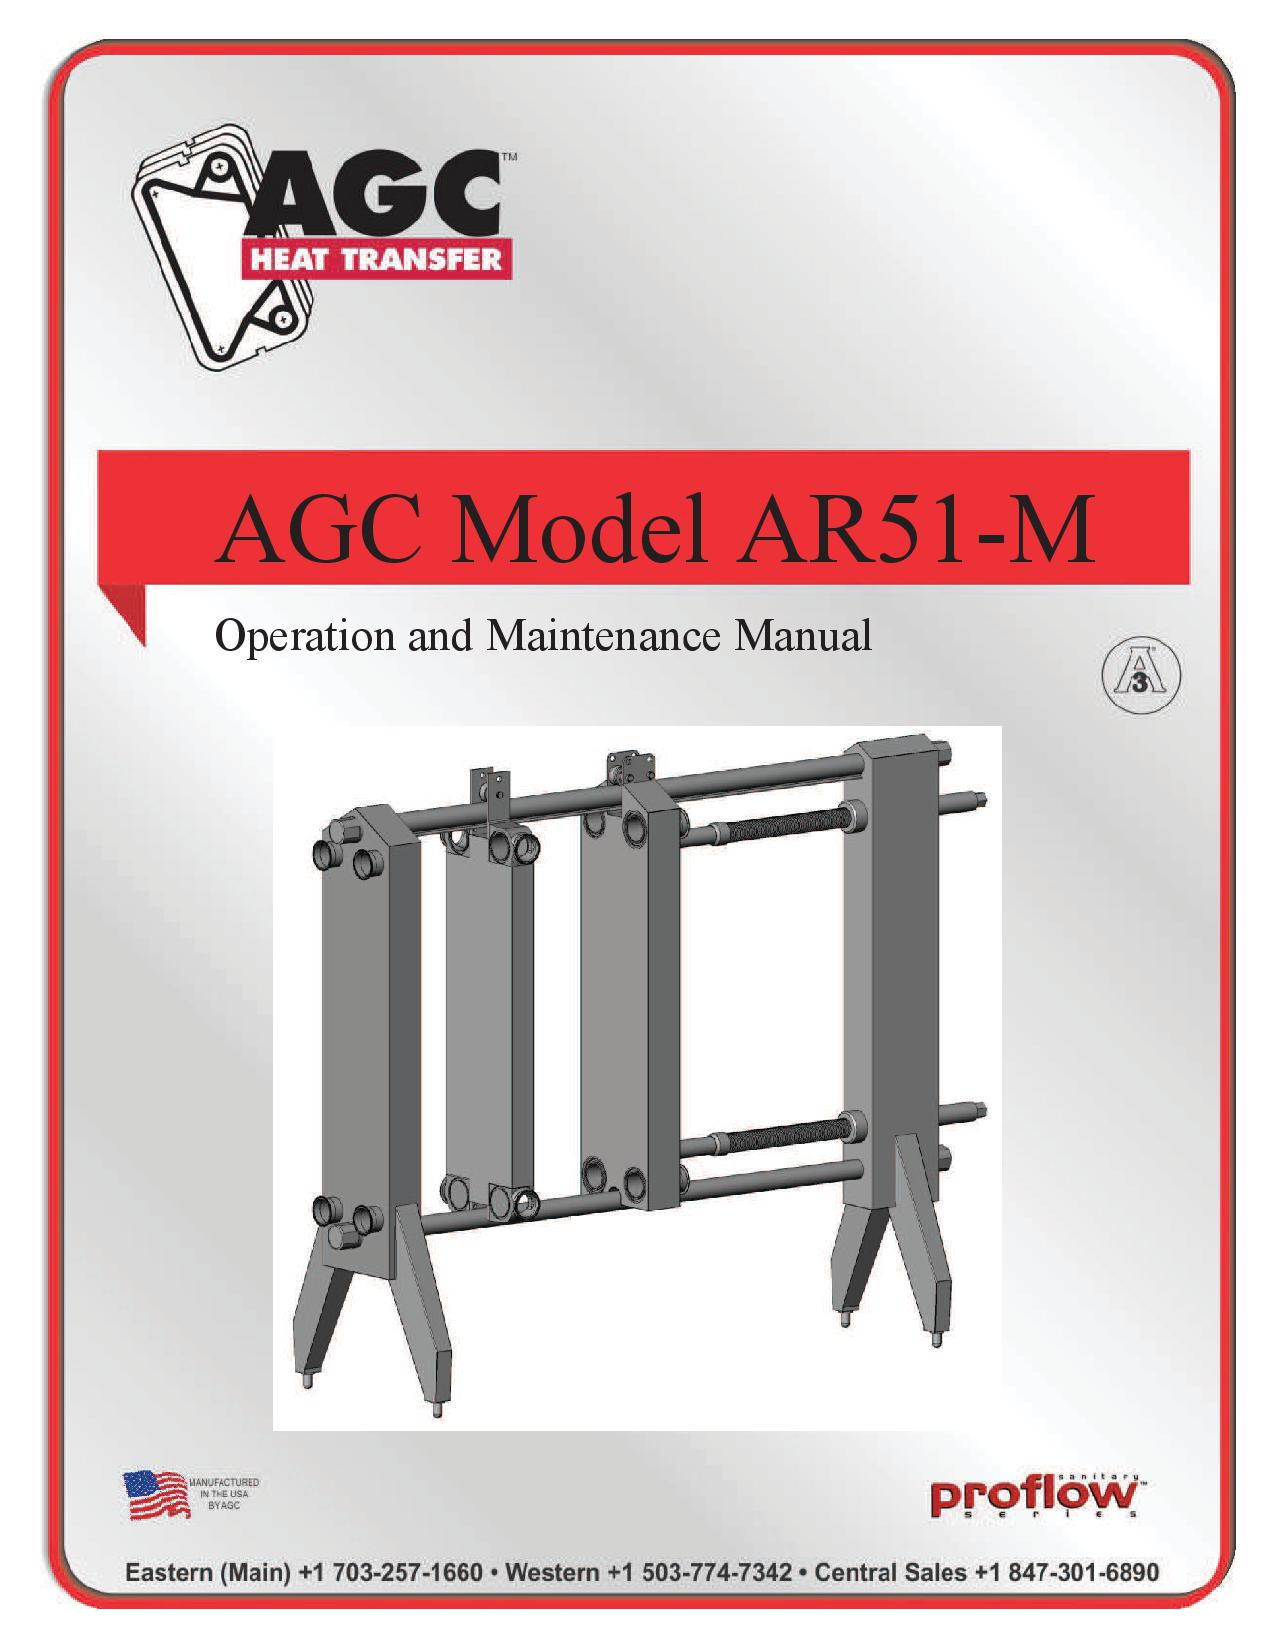 AGC Operating Manual AR51-M